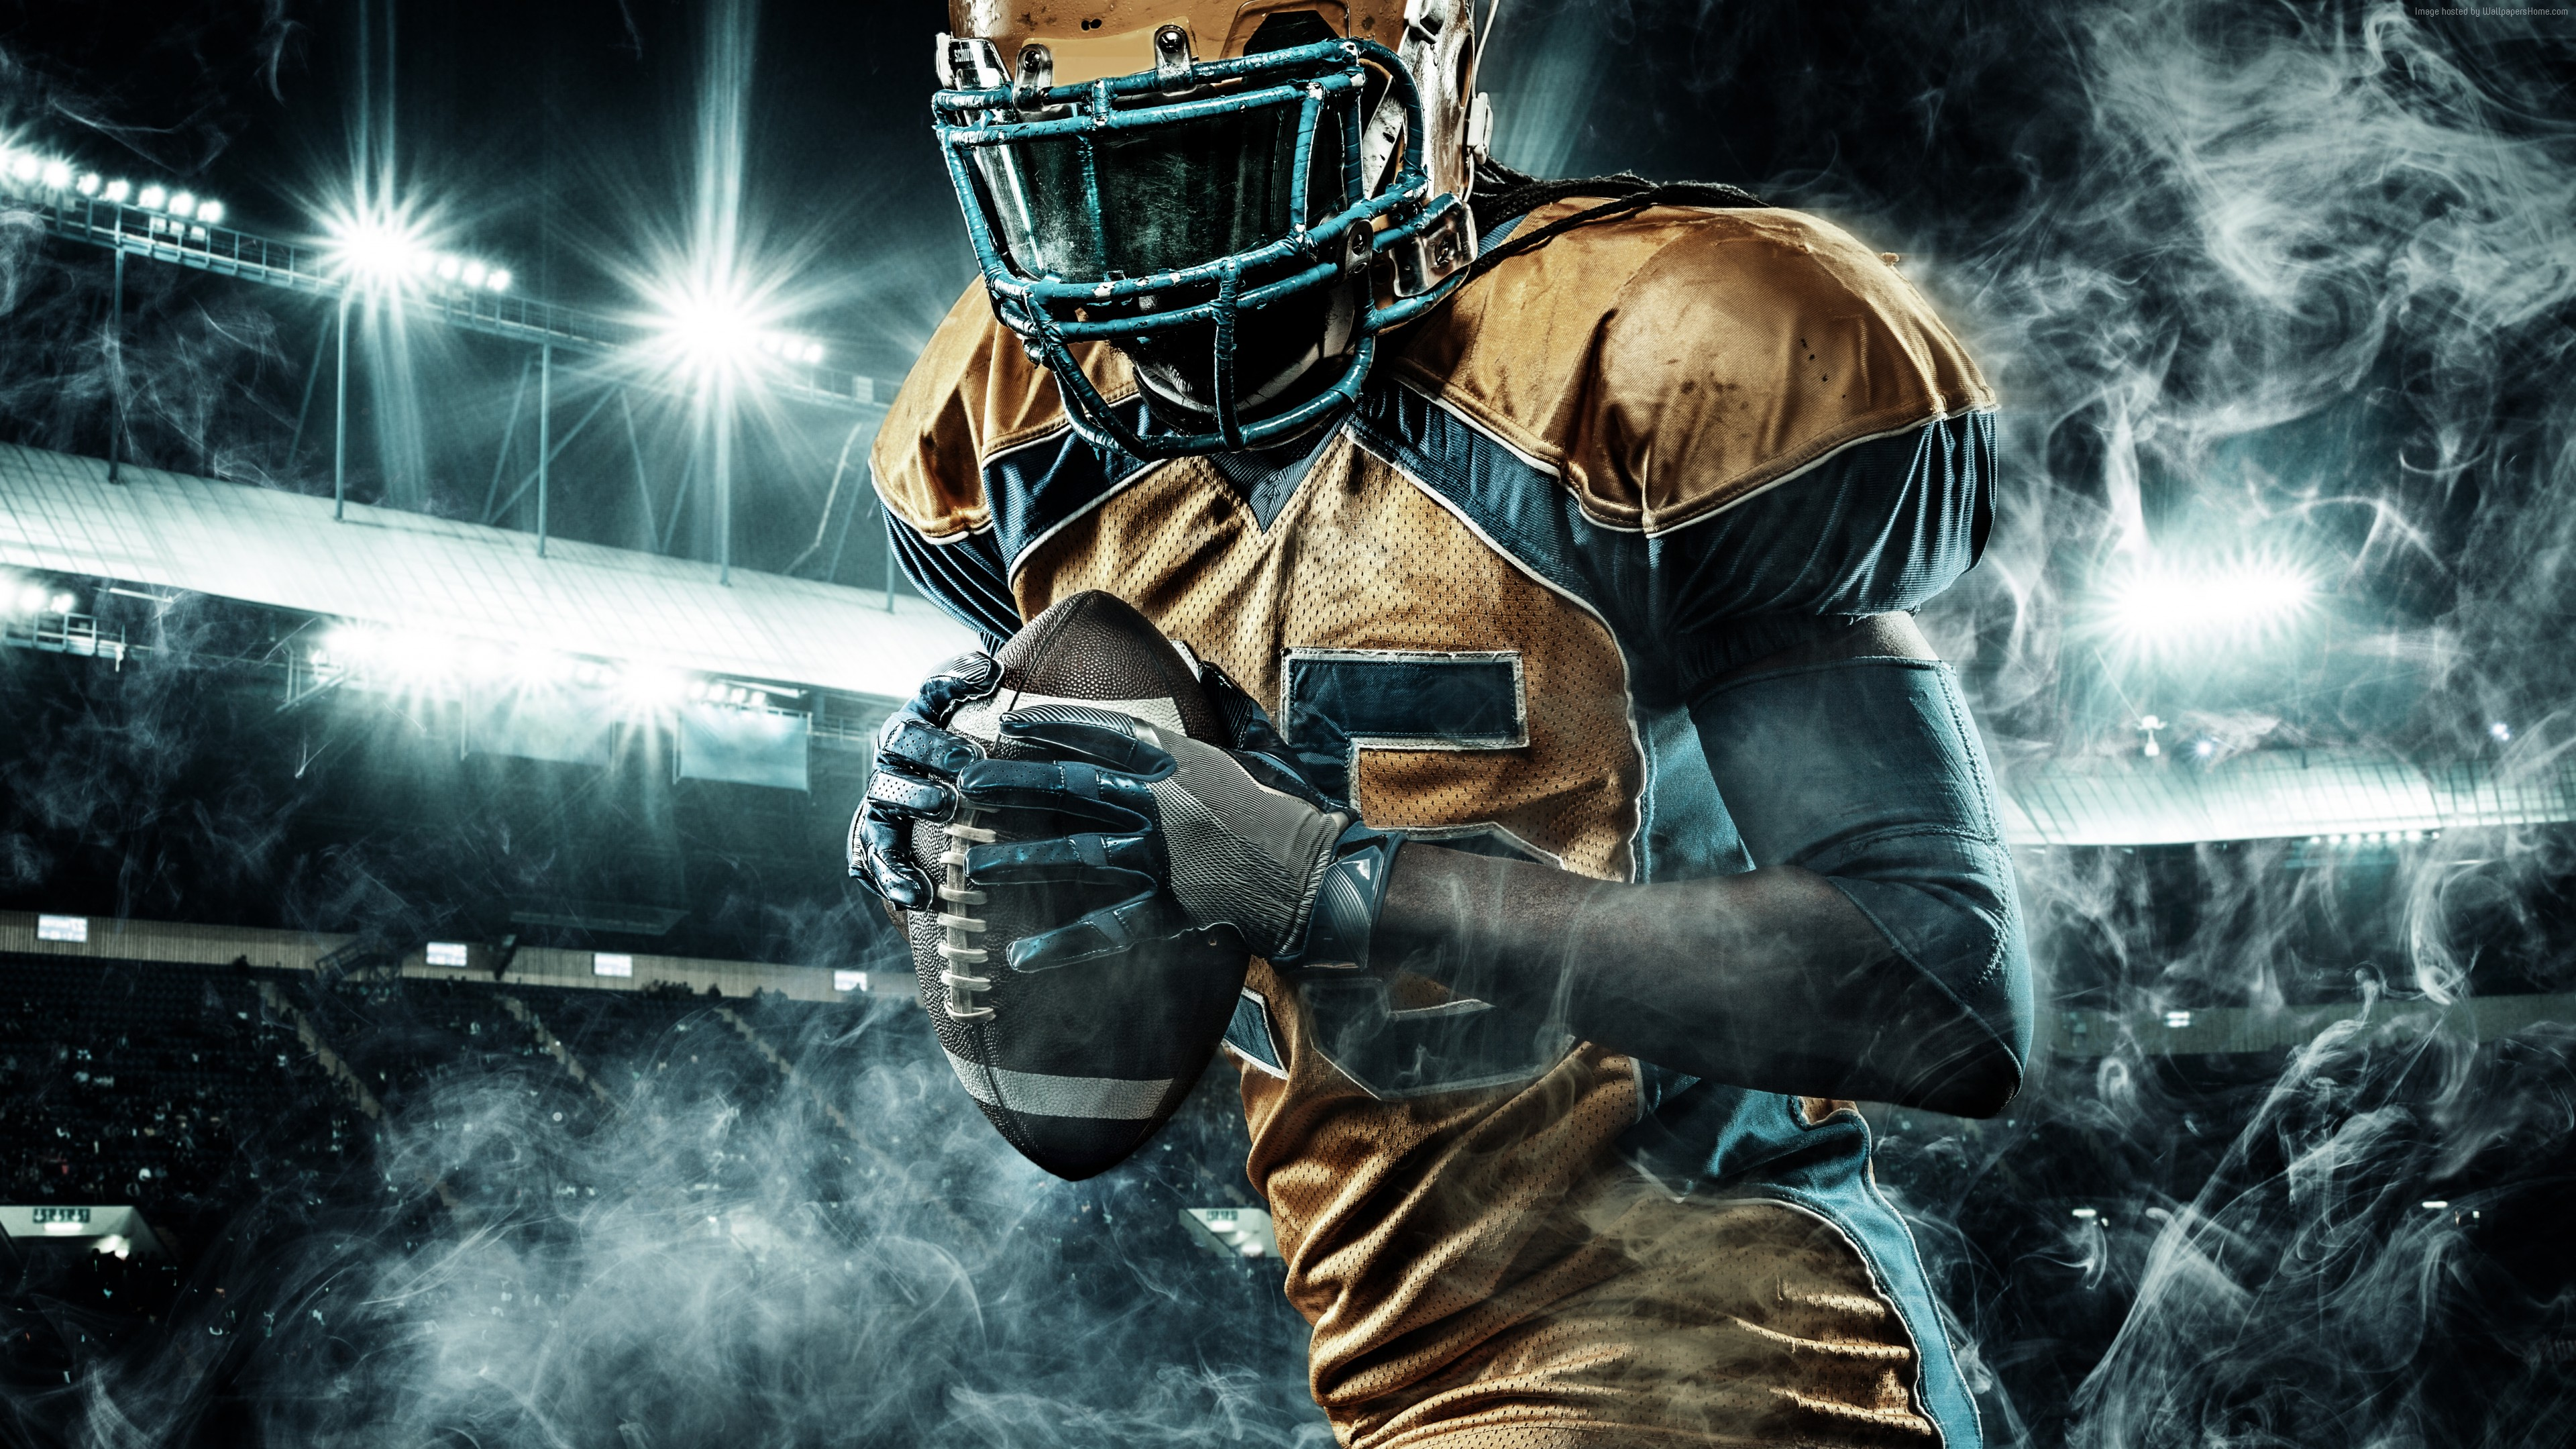 Wallpaper rugby, American football, 5k, Sport